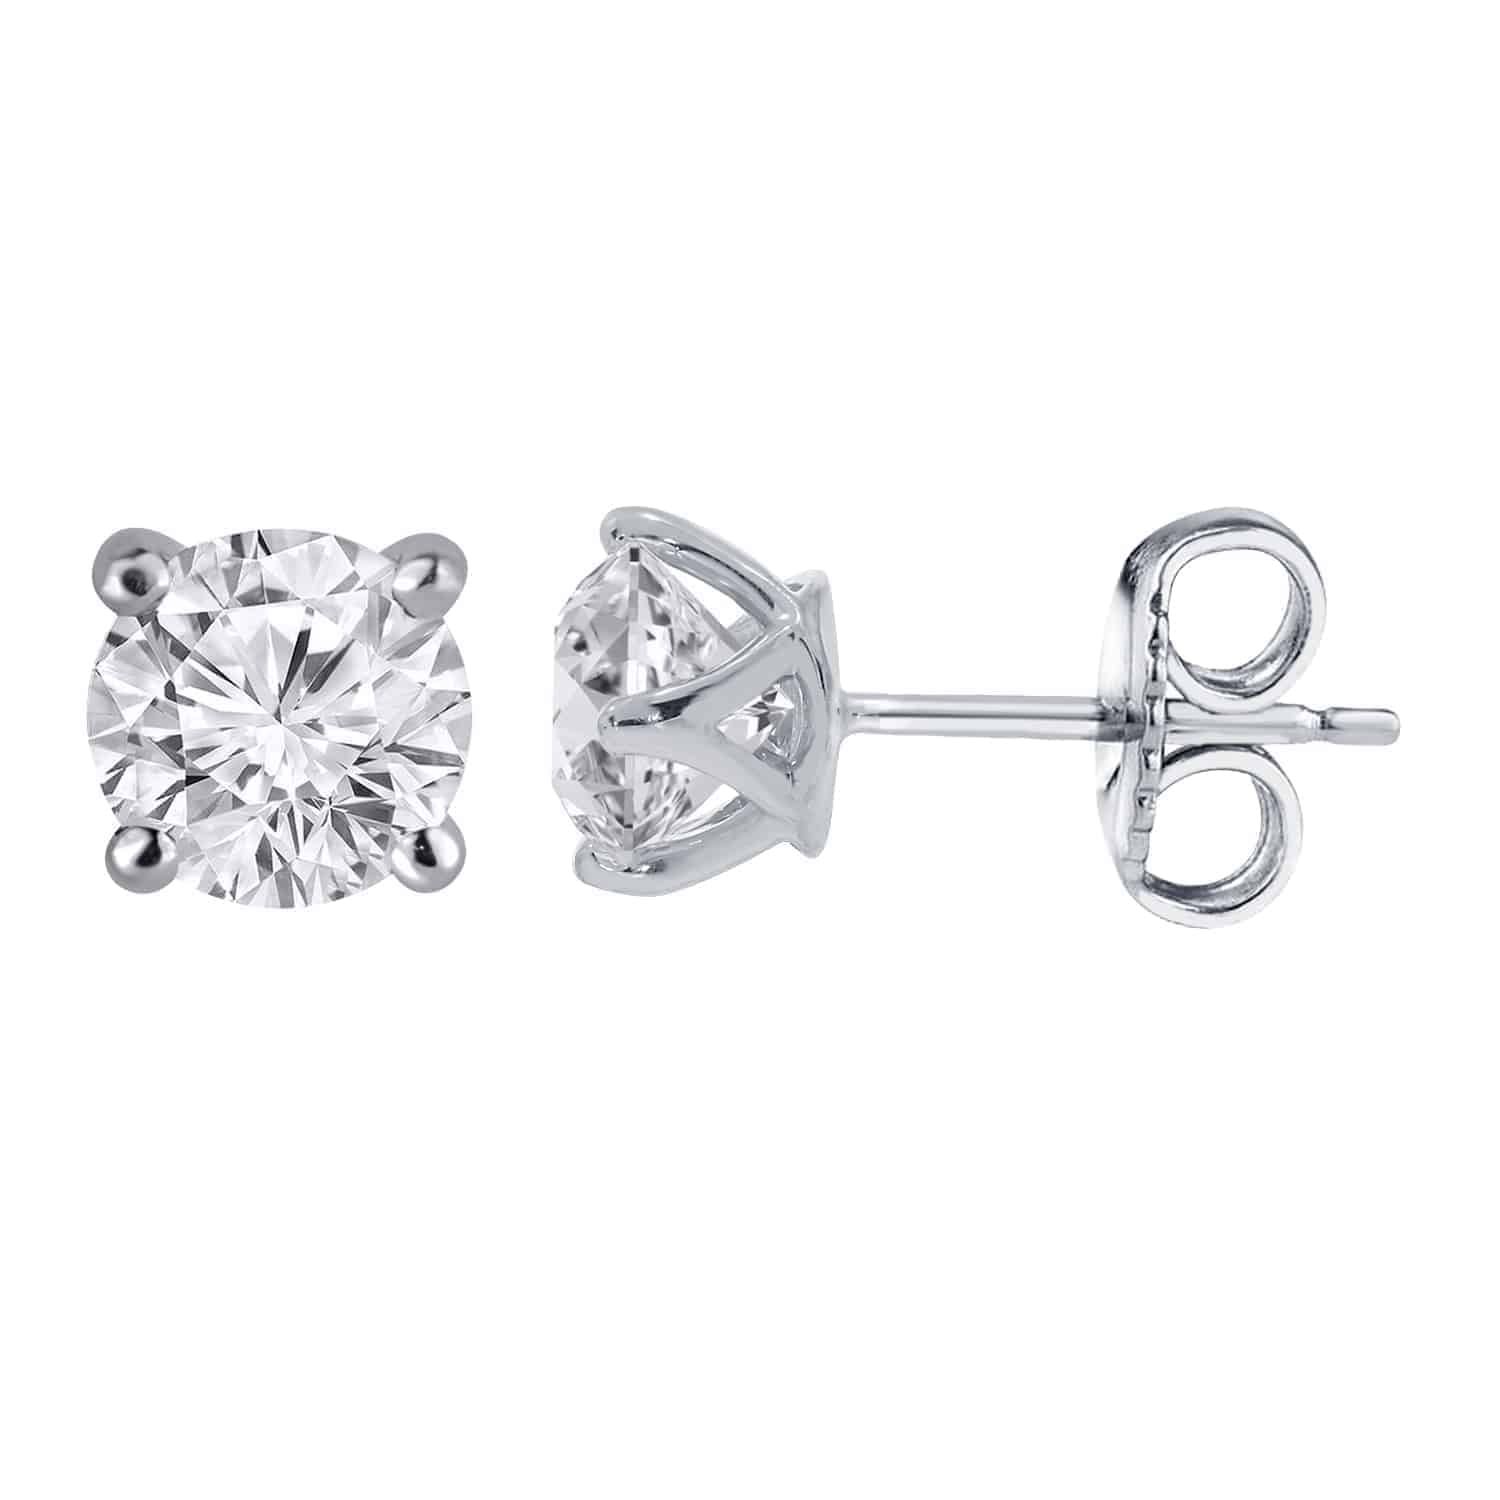 14k White Gold Claw Stud Earrings 1.00ct_0